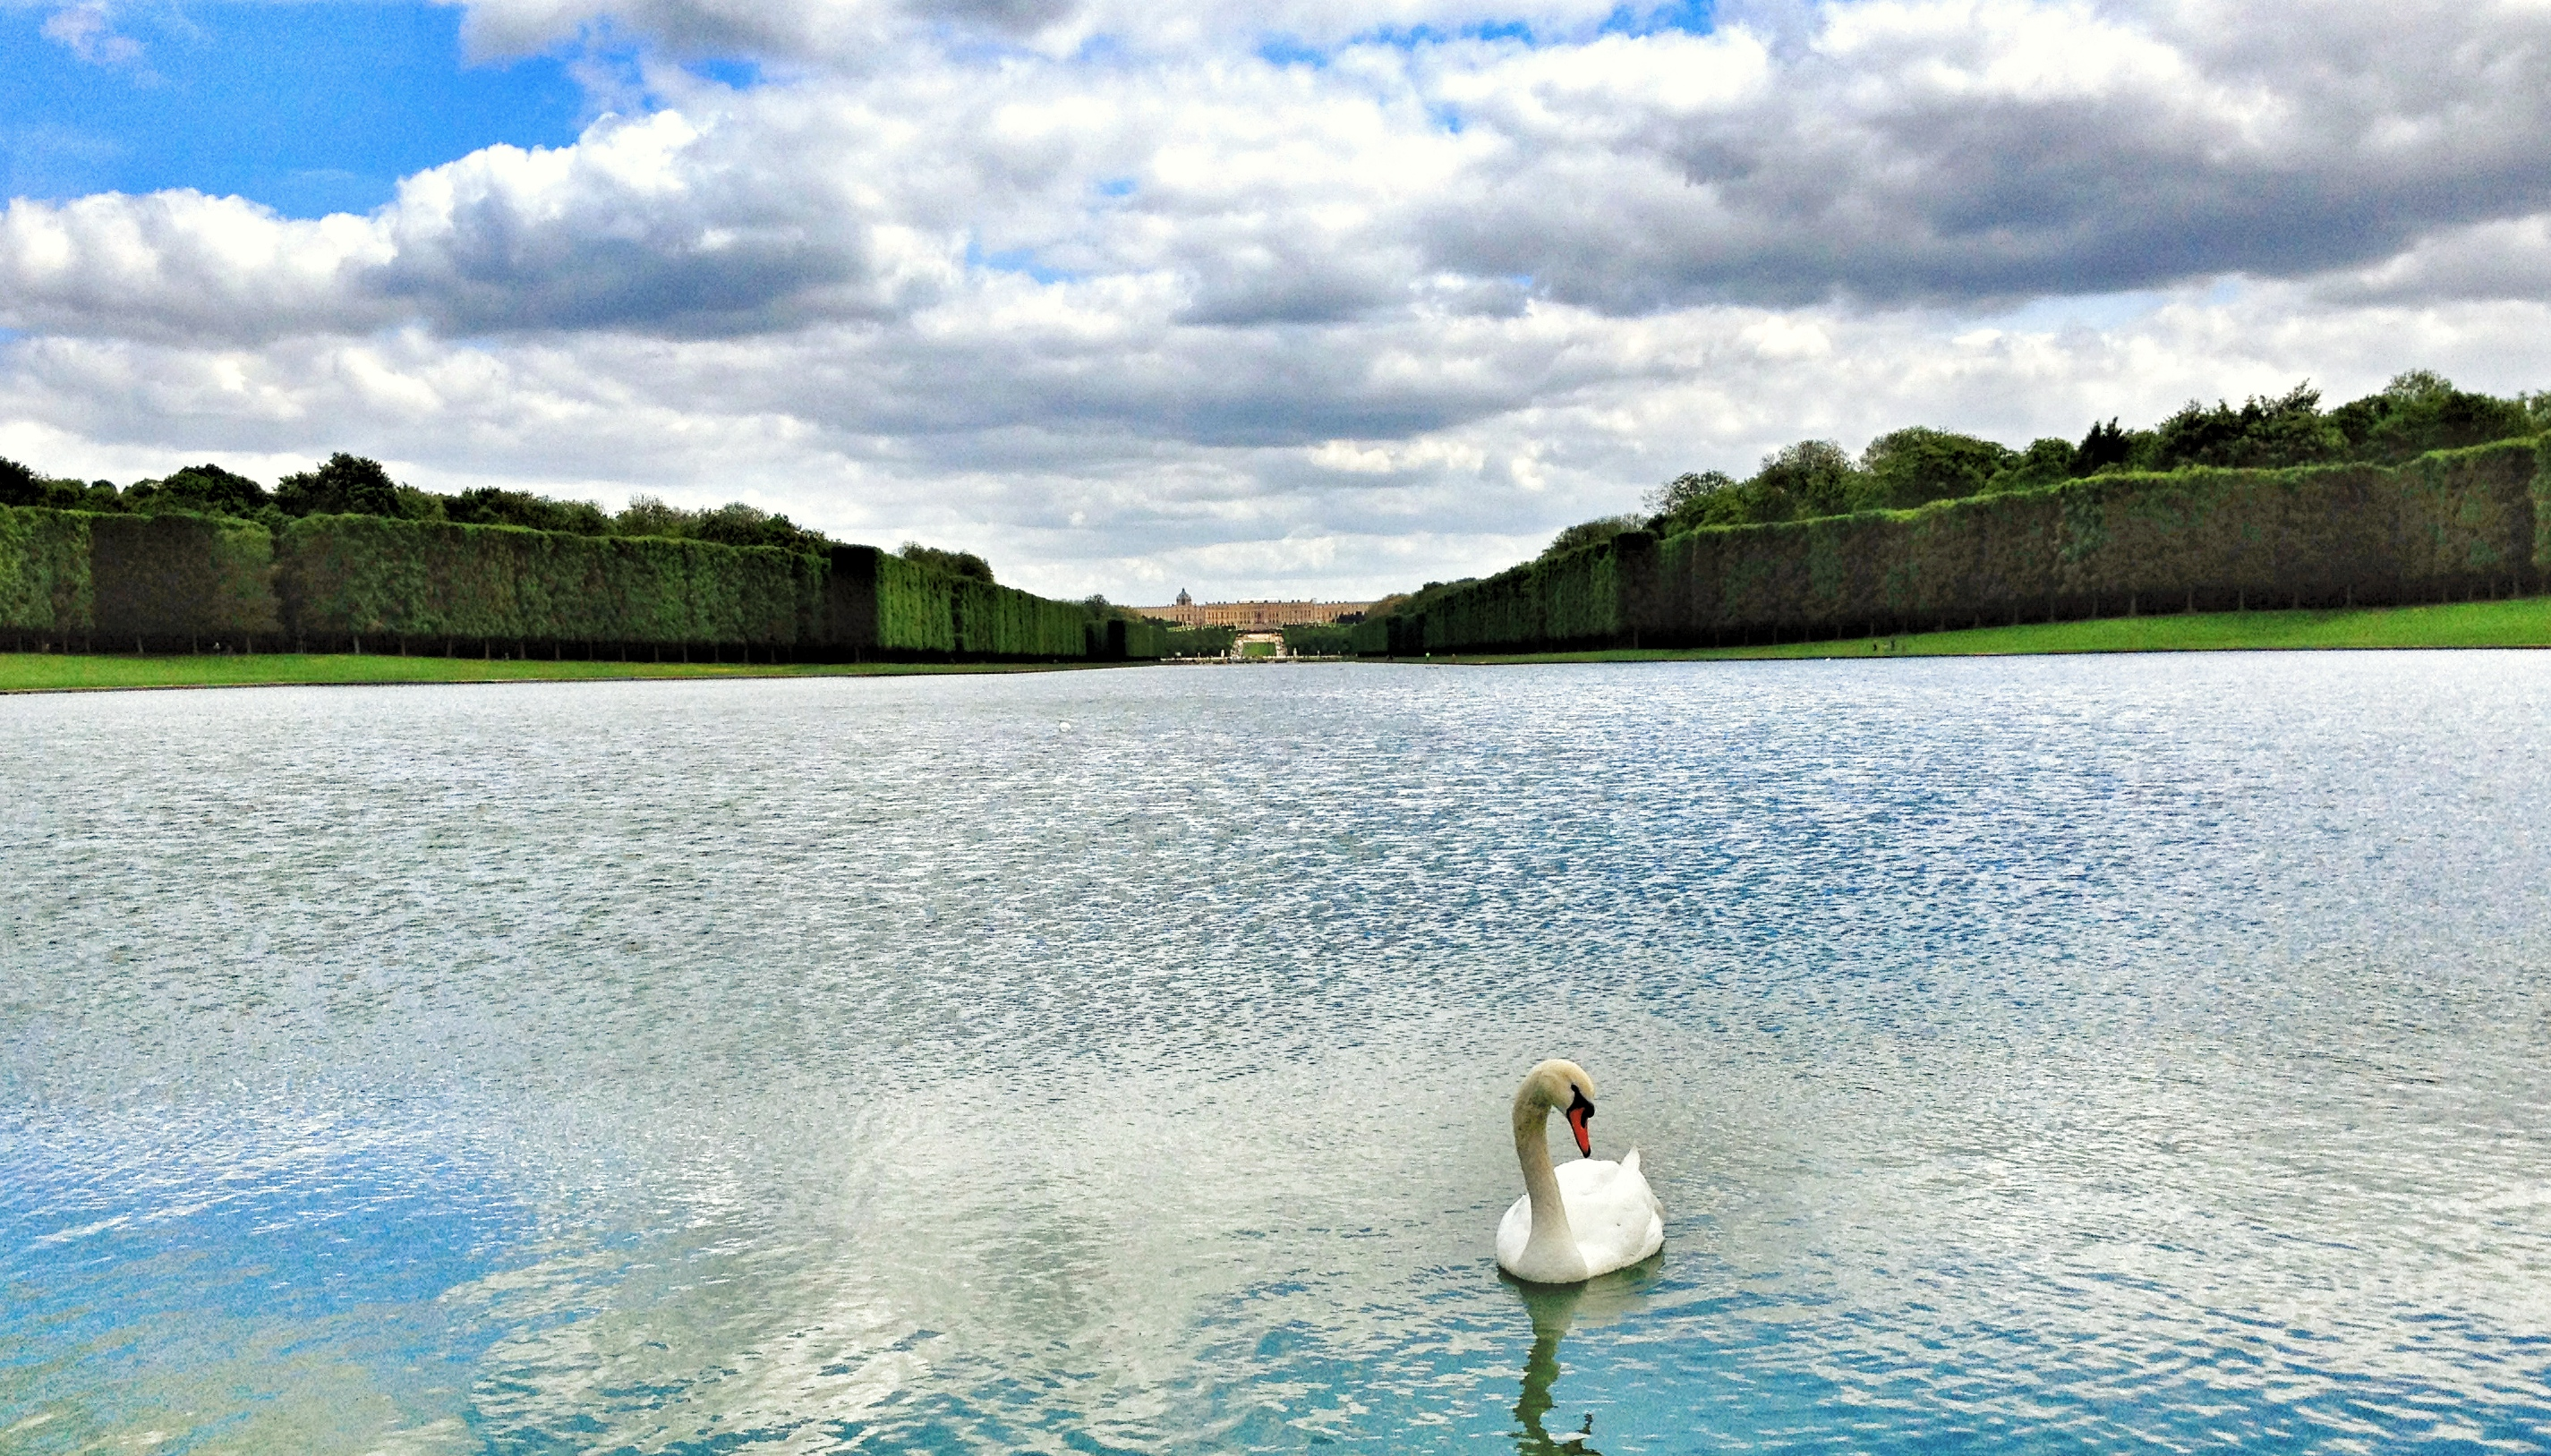 A swan posing in the lake in front of Chateau de Versailles.